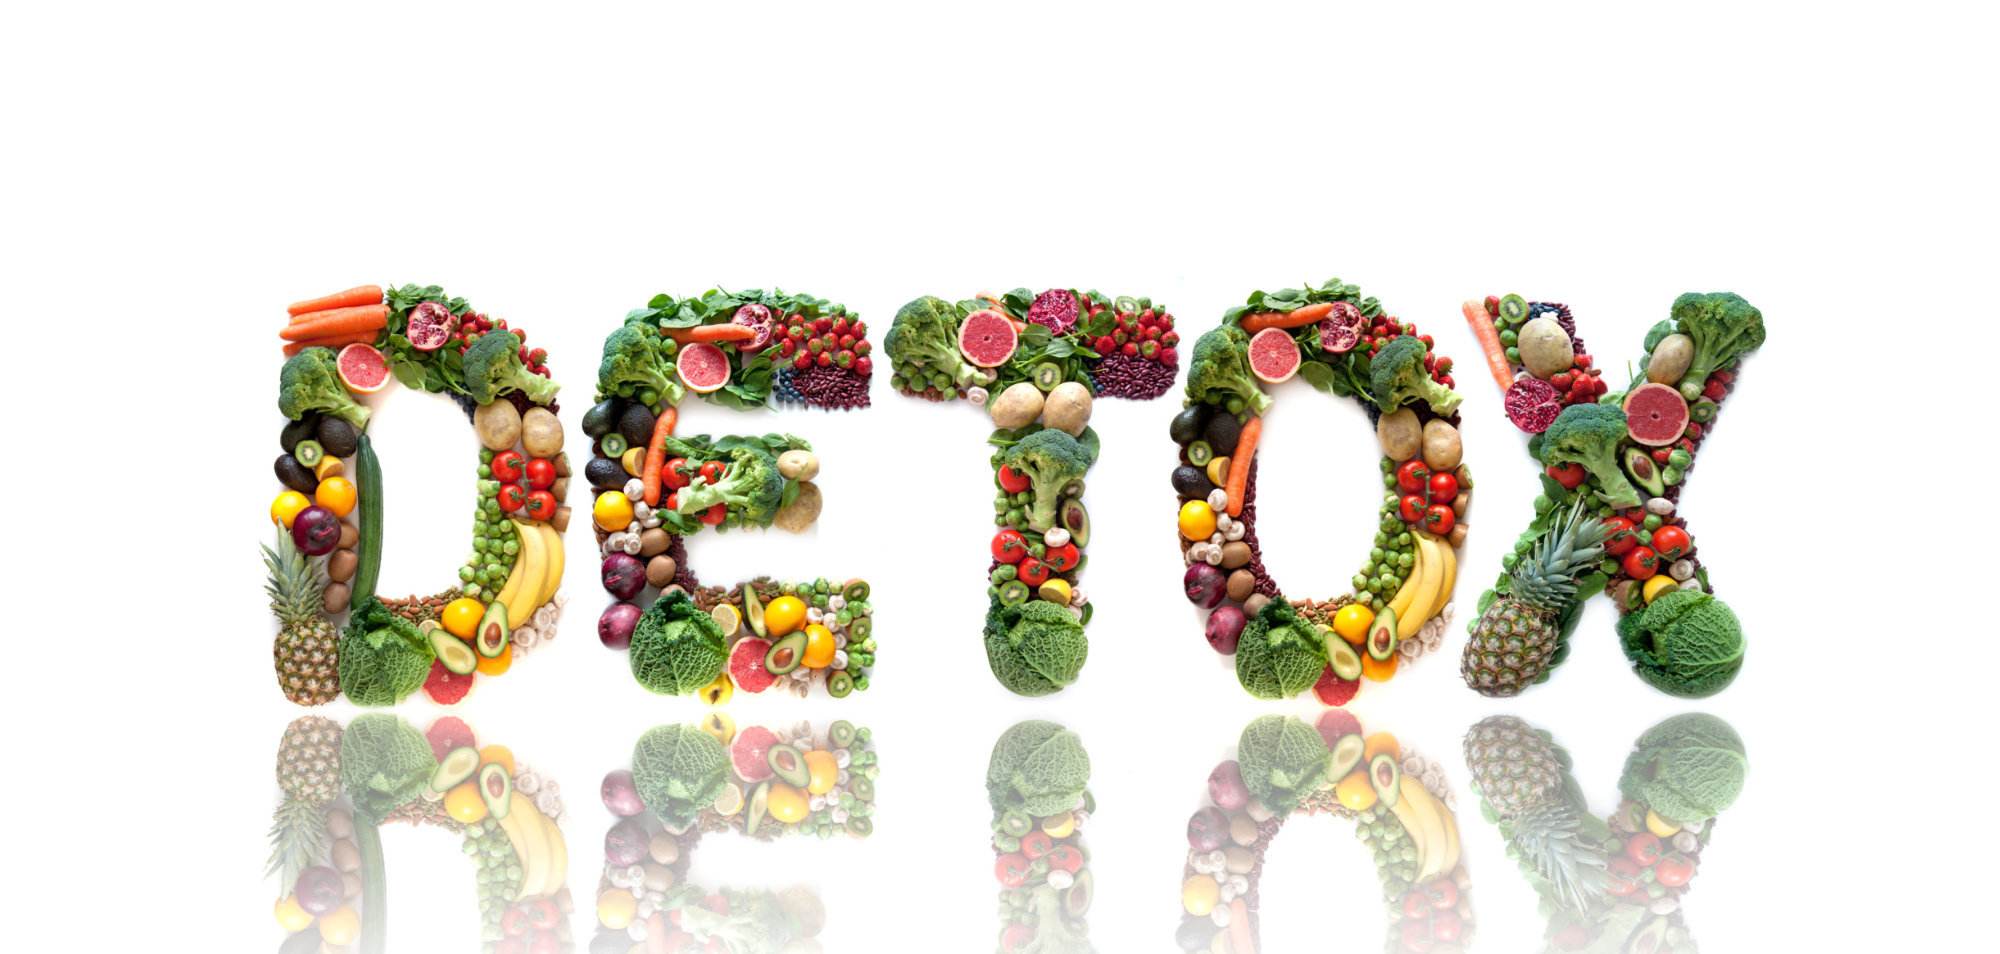 Detox spelt using large letters made of fruits and vegetables